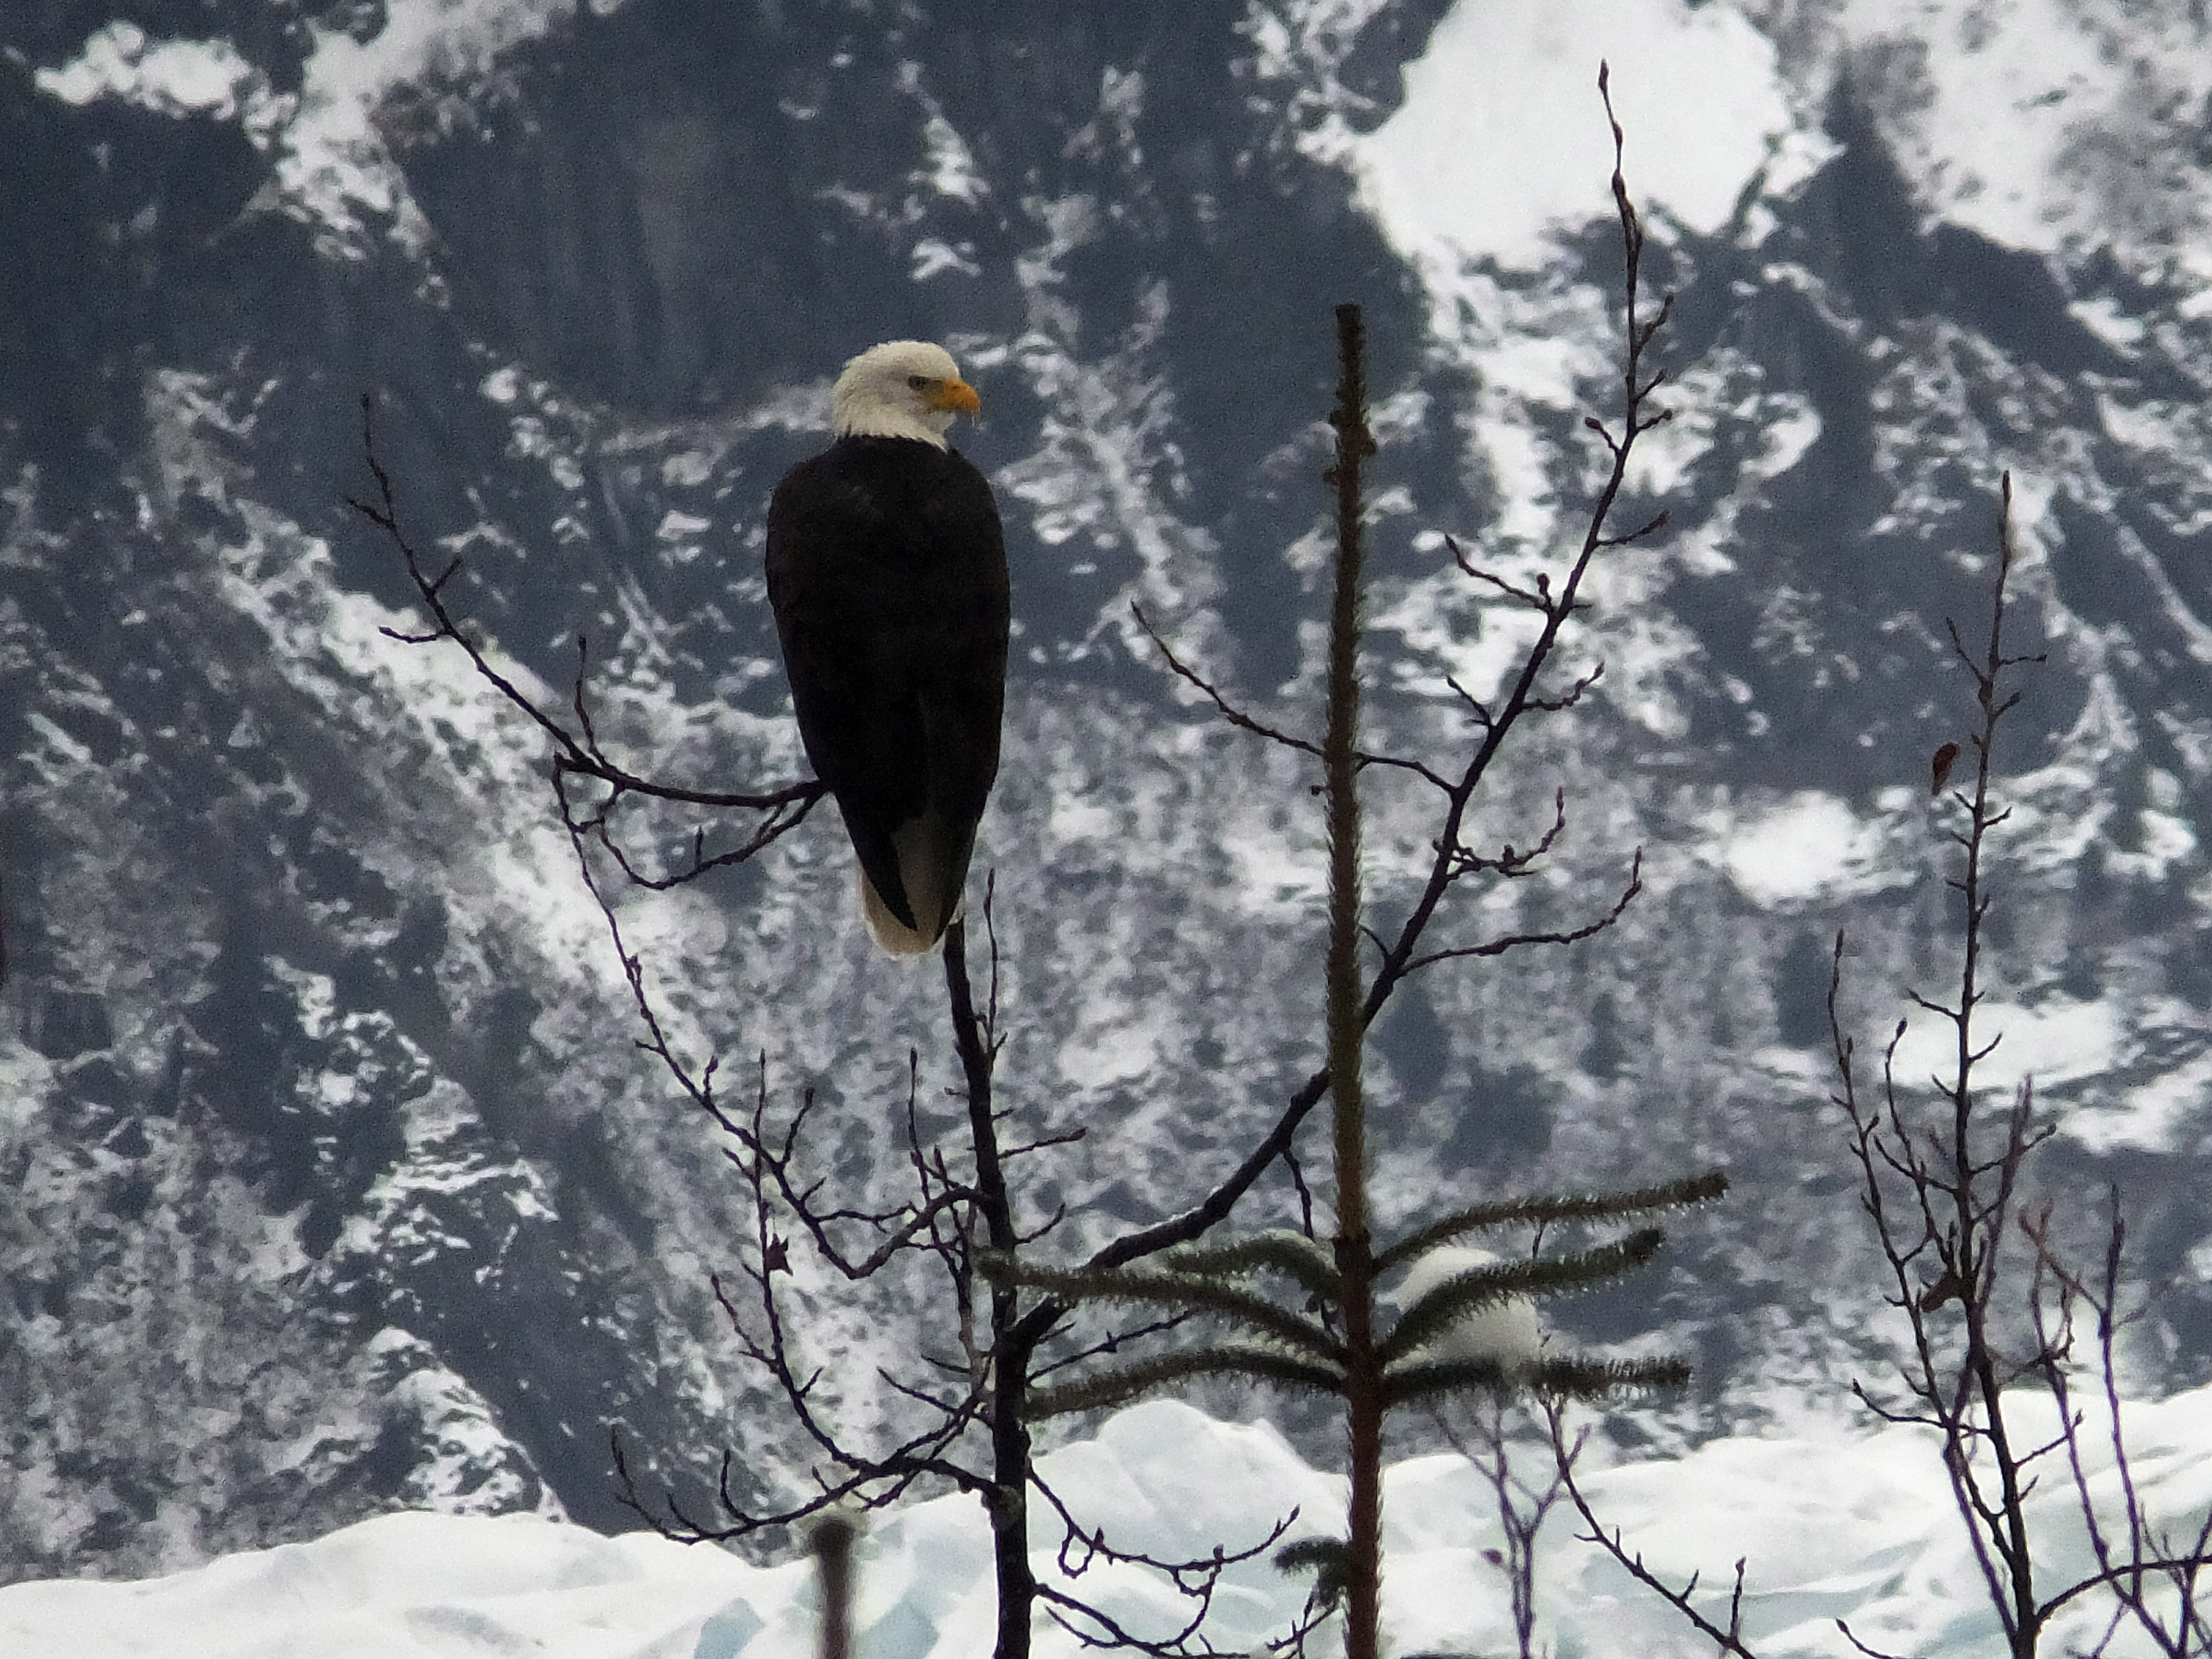 A bald eagle sits perched on a tree near the Mendenhall Glacier on Sunday, Dec. 7, 2014, in Juneau, Alaska. How will climate change affect Alaska's future? (Becky Bohrer/AP)